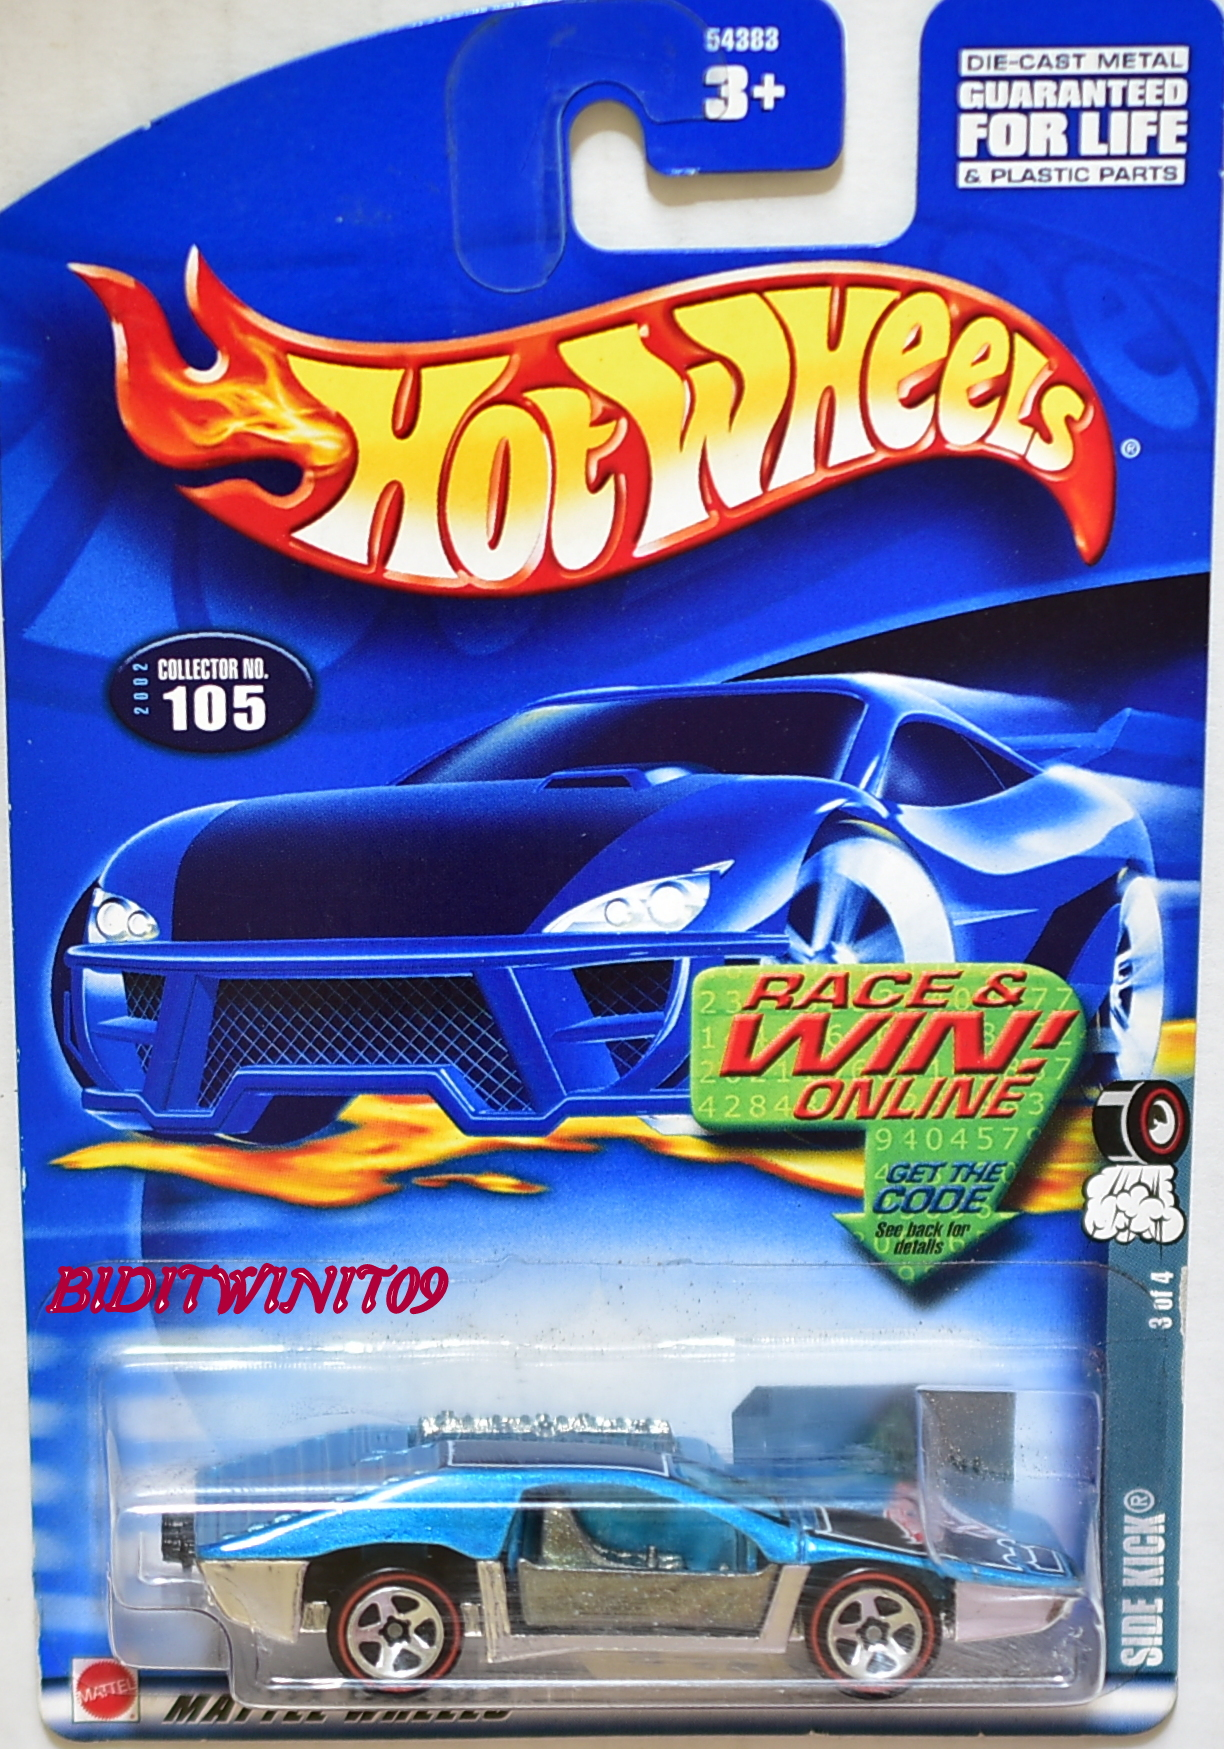 HOT WHEELS 2002 SIDE KICK #105 BLUE